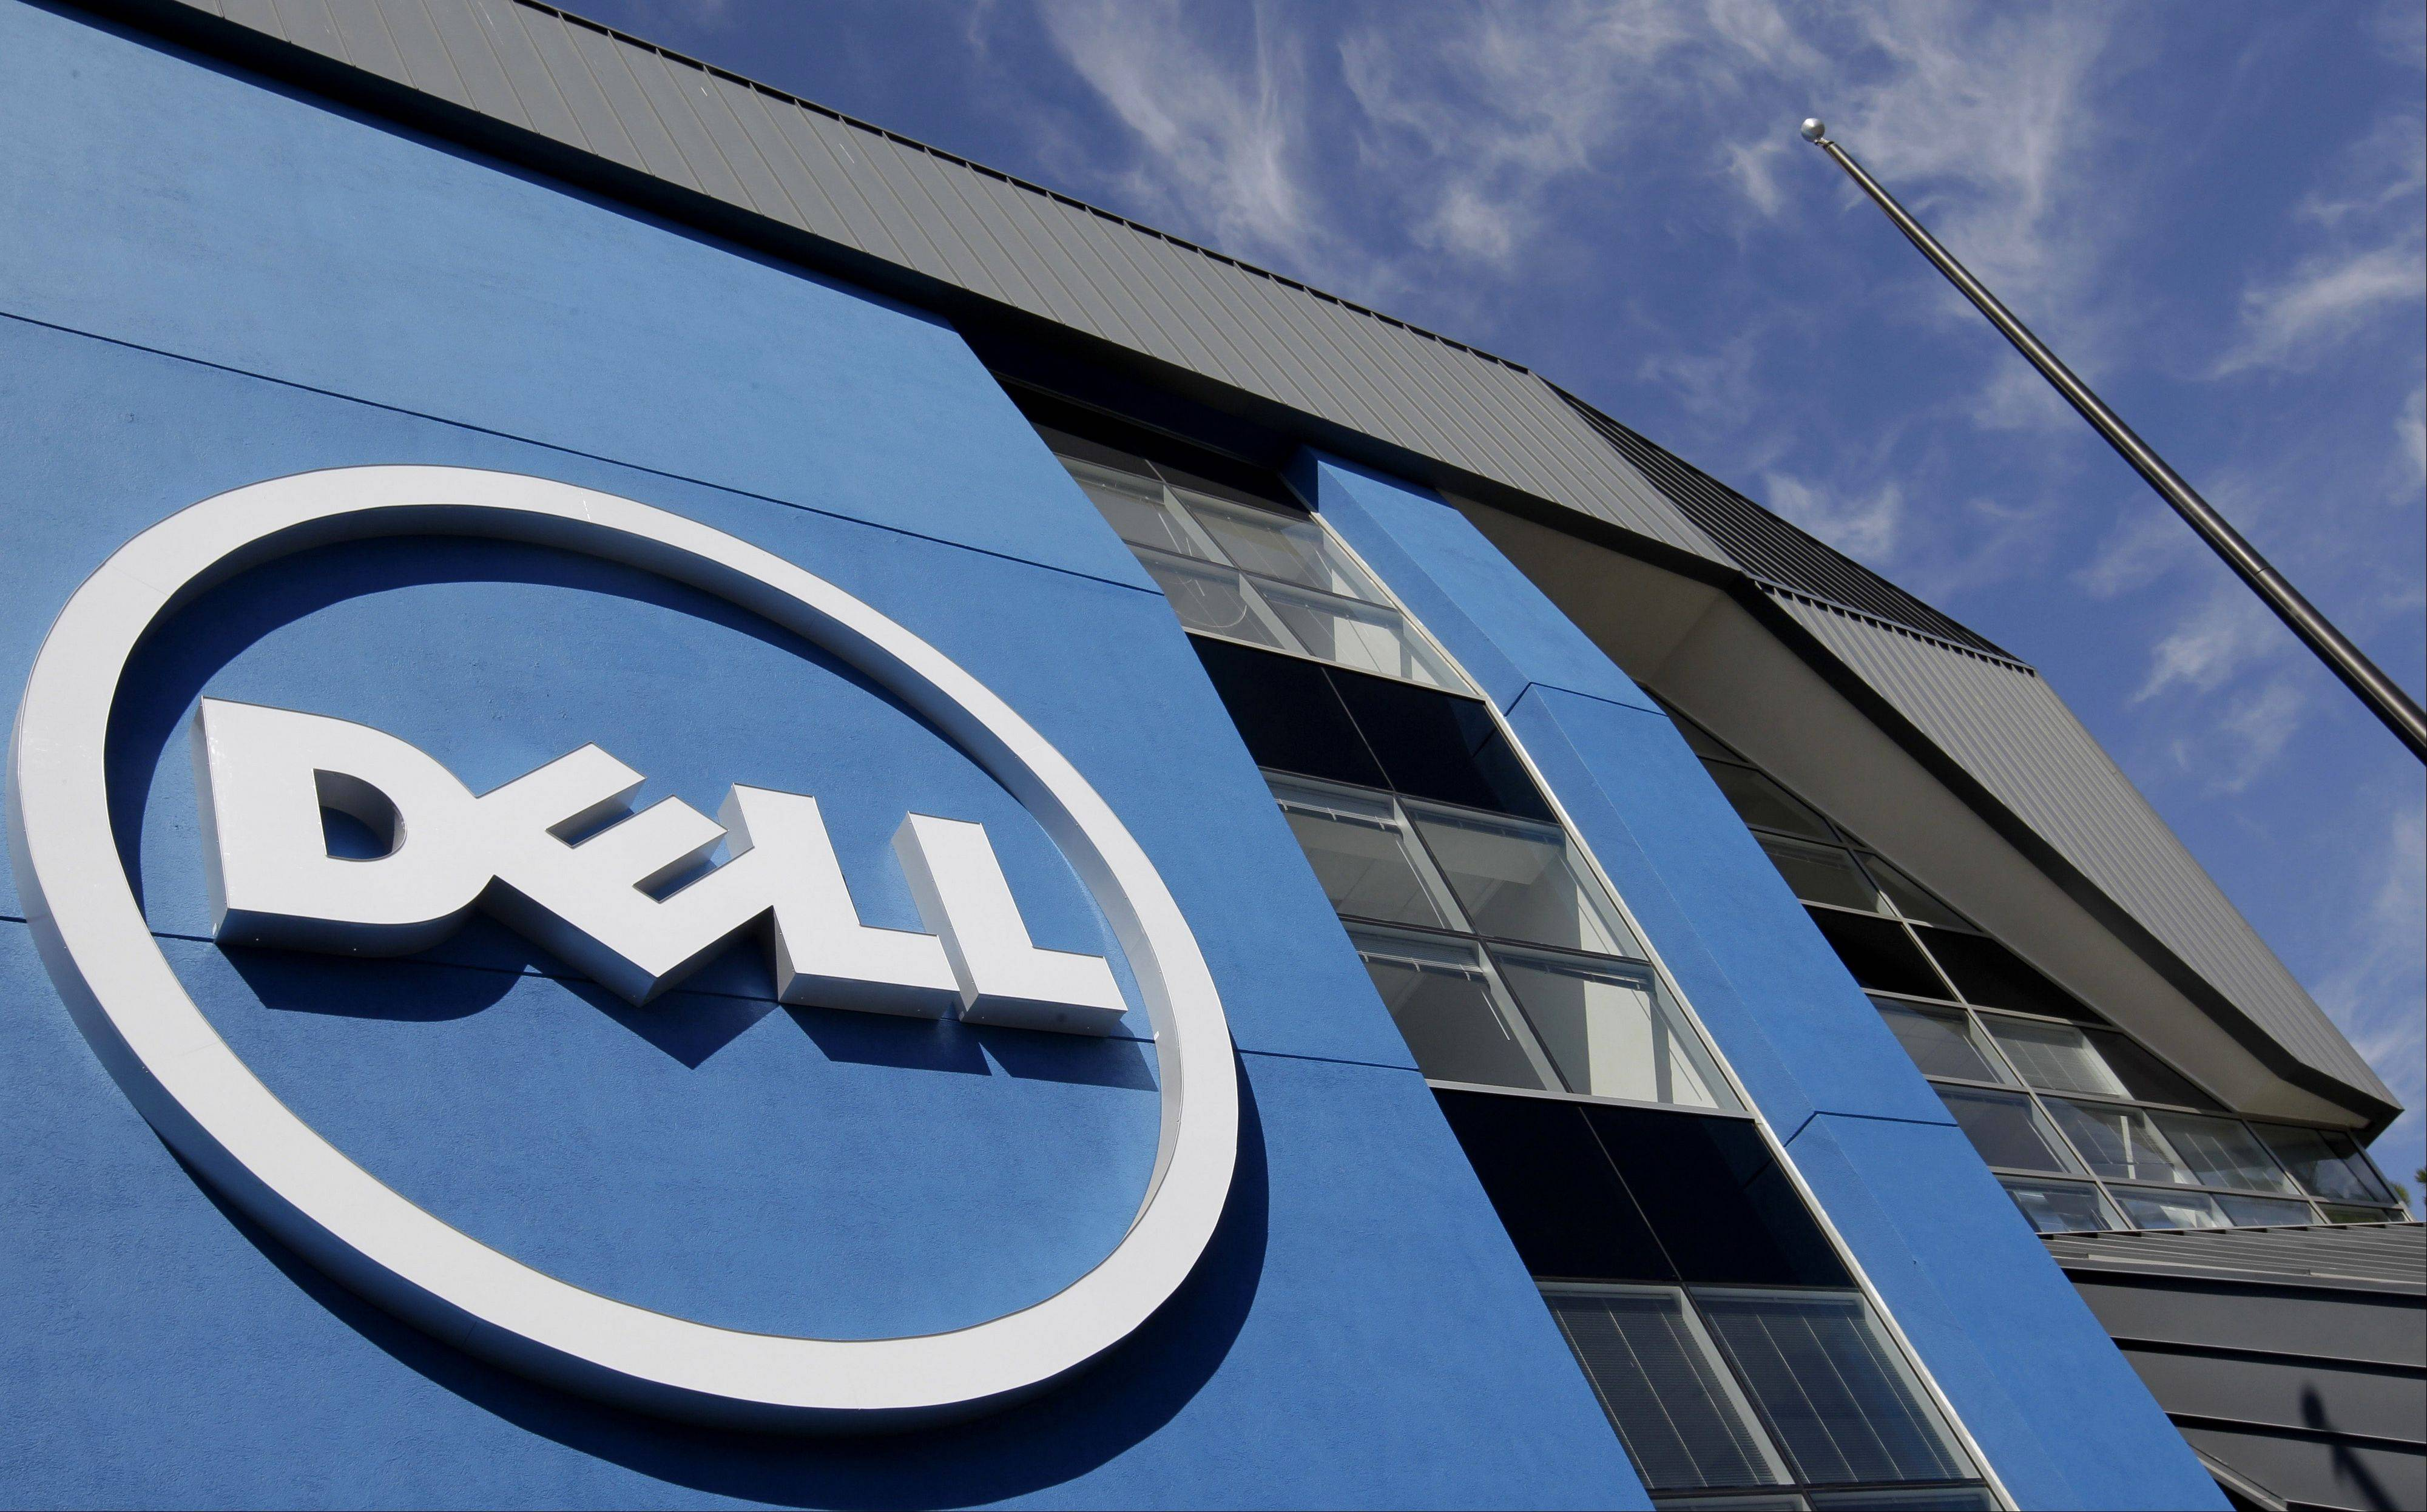 Slumping personal computer maker Dell announced Tuesday that it is bowing out of the stock market in a $24.4 billion buyout that represents the largest deal of its kind since the Great Recession dried up the financing for such risky maneuvers.